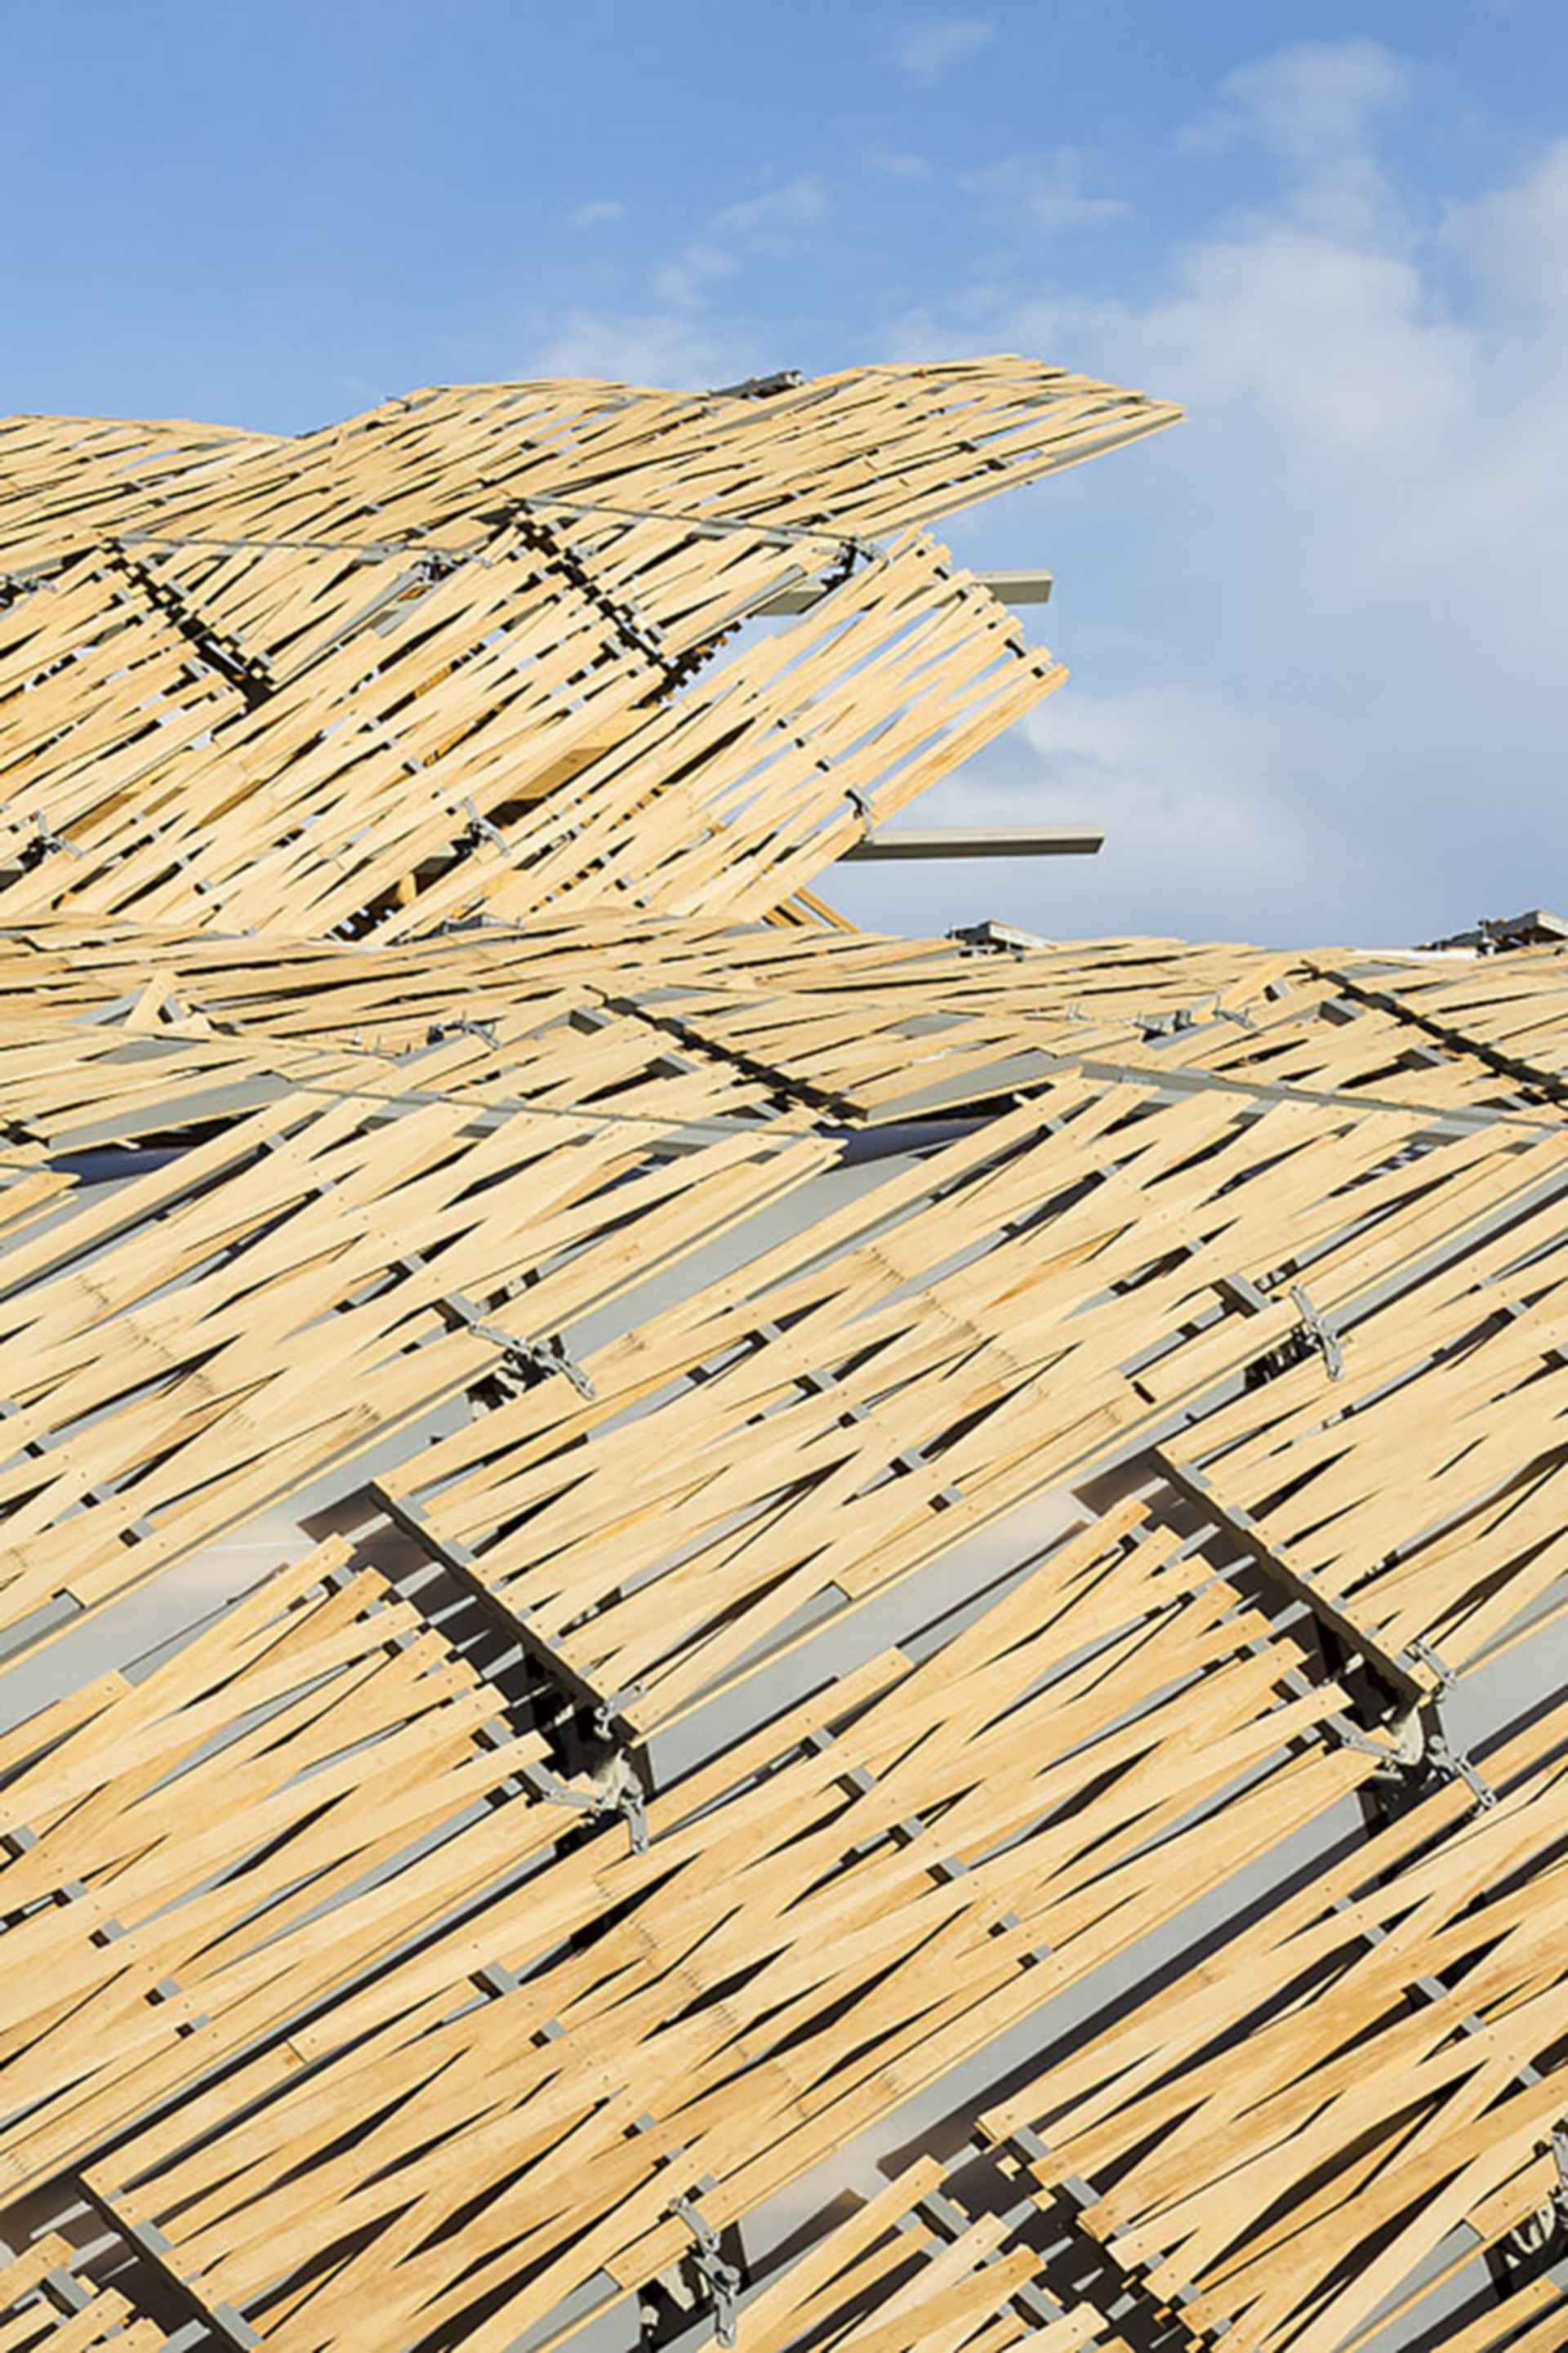 China Pavilion at Milan Expo 2015 - Roofing